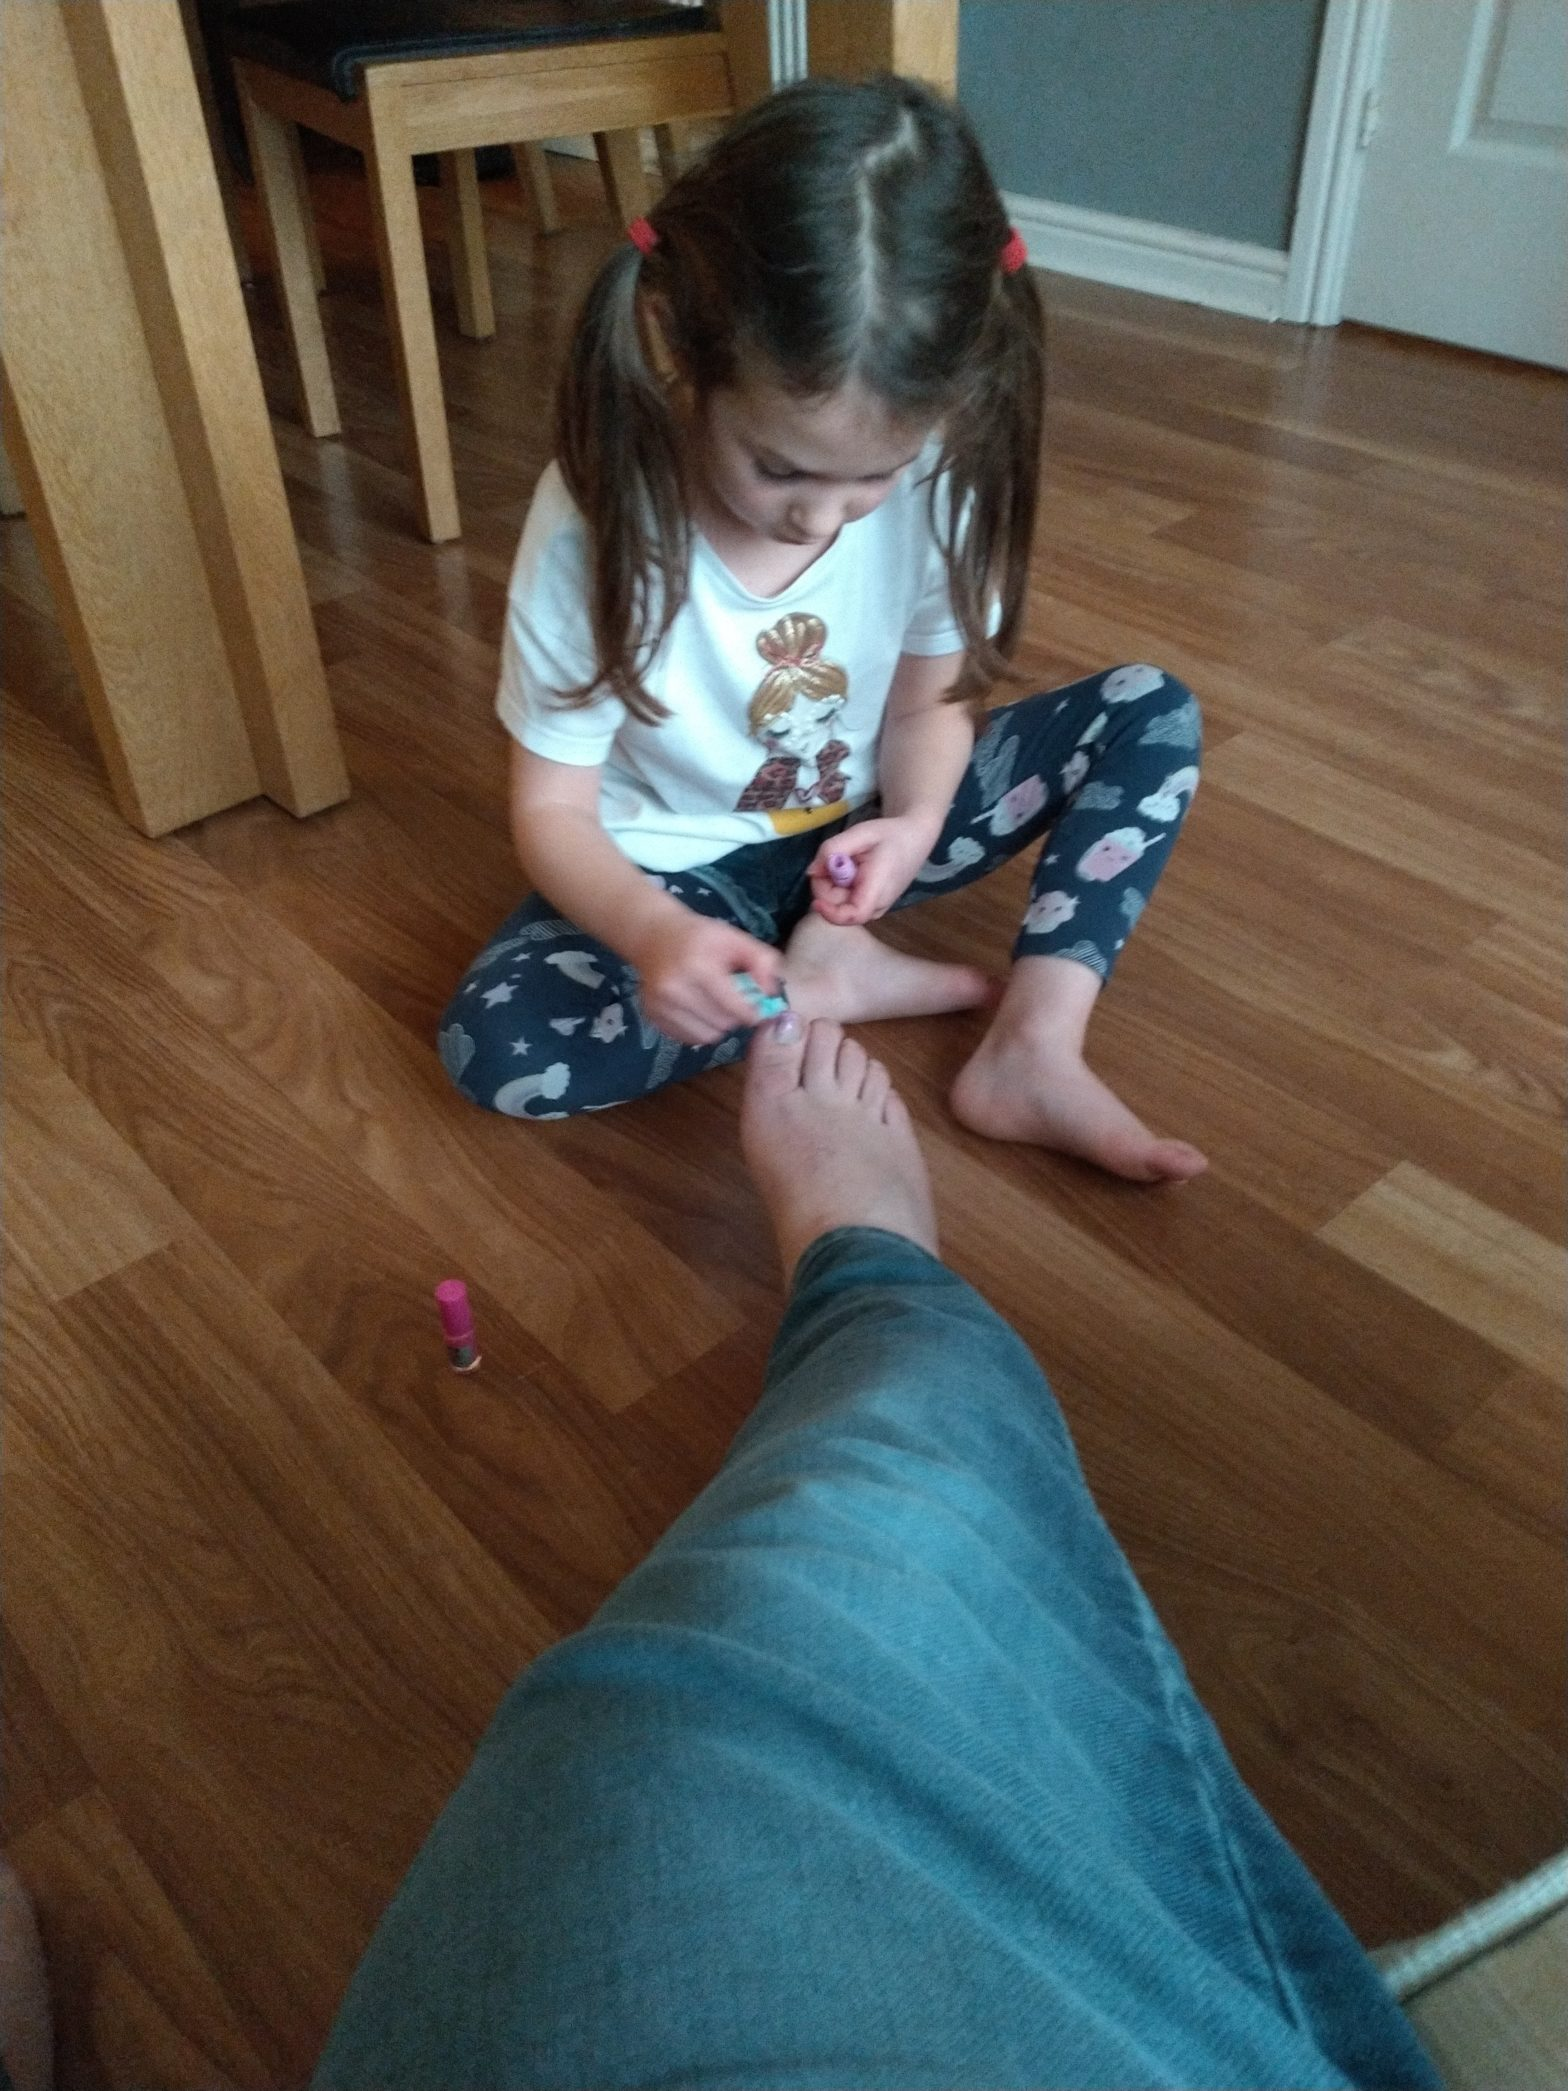 Today, Emily painted my fingernails and toenails. I felt very pampered